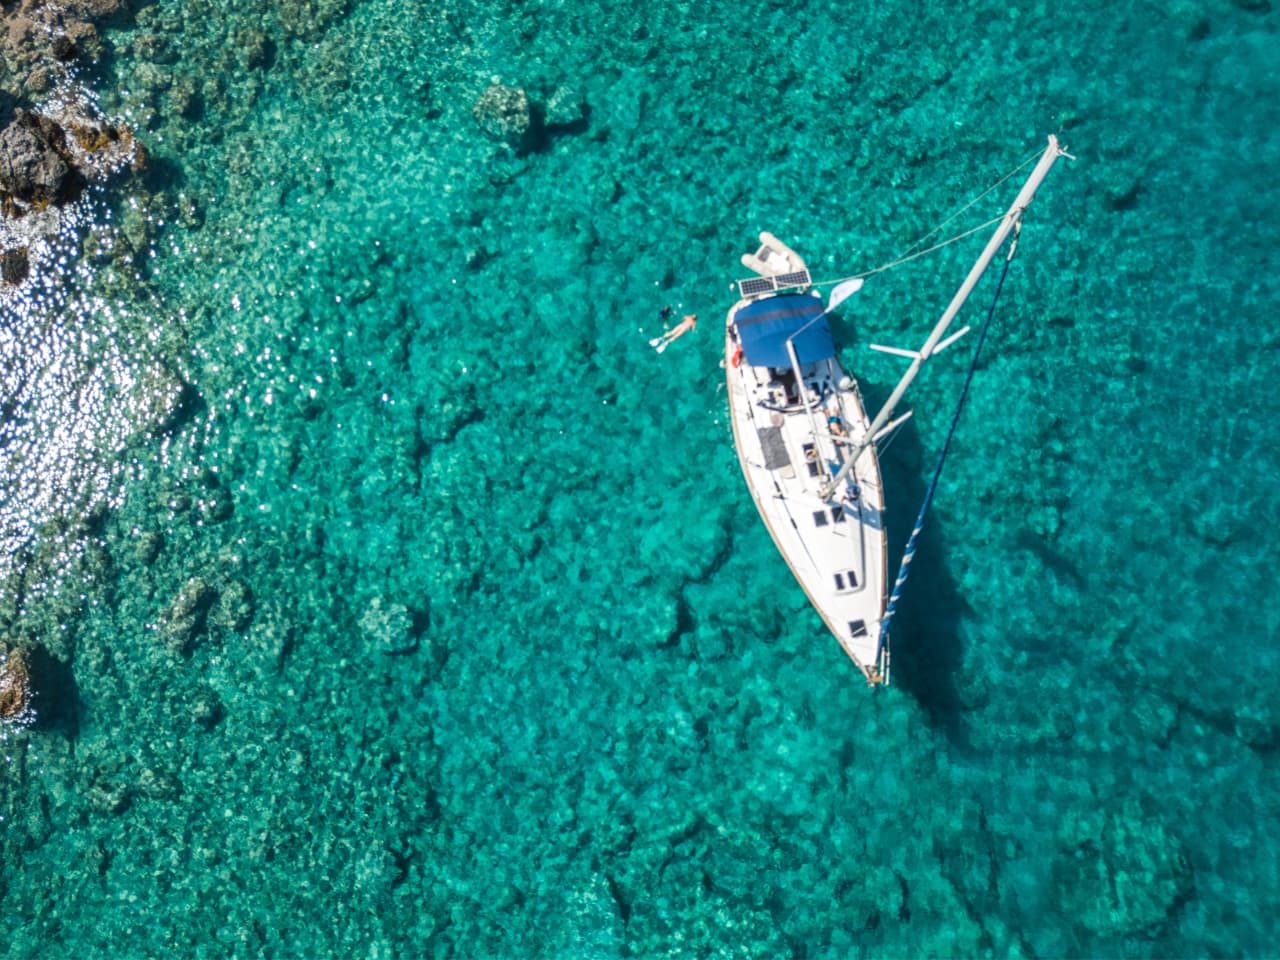 Multi-Day Sailing Trip From Crete to Cyclades Islands, sailing trip Milos, Poliegos, Sikinos, Folegandros, Santorini, Anafi, best sailing tour from crete to agean islands greece, sailing activities crete